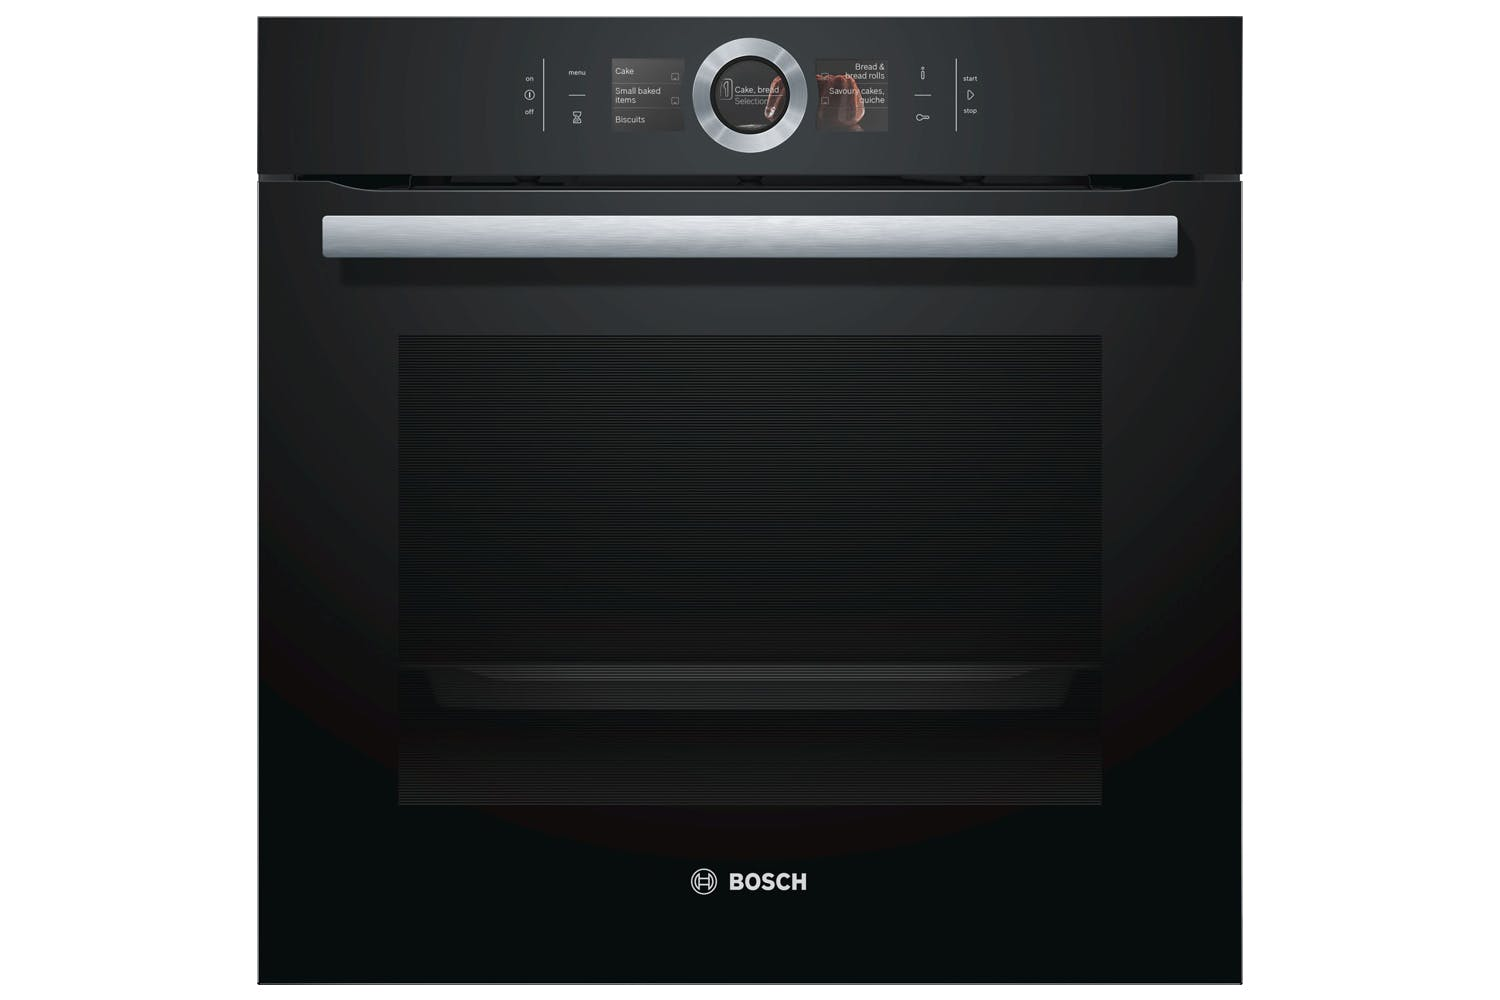 032d86d792cc1 Bosch Series 8 Built-in Single Oven